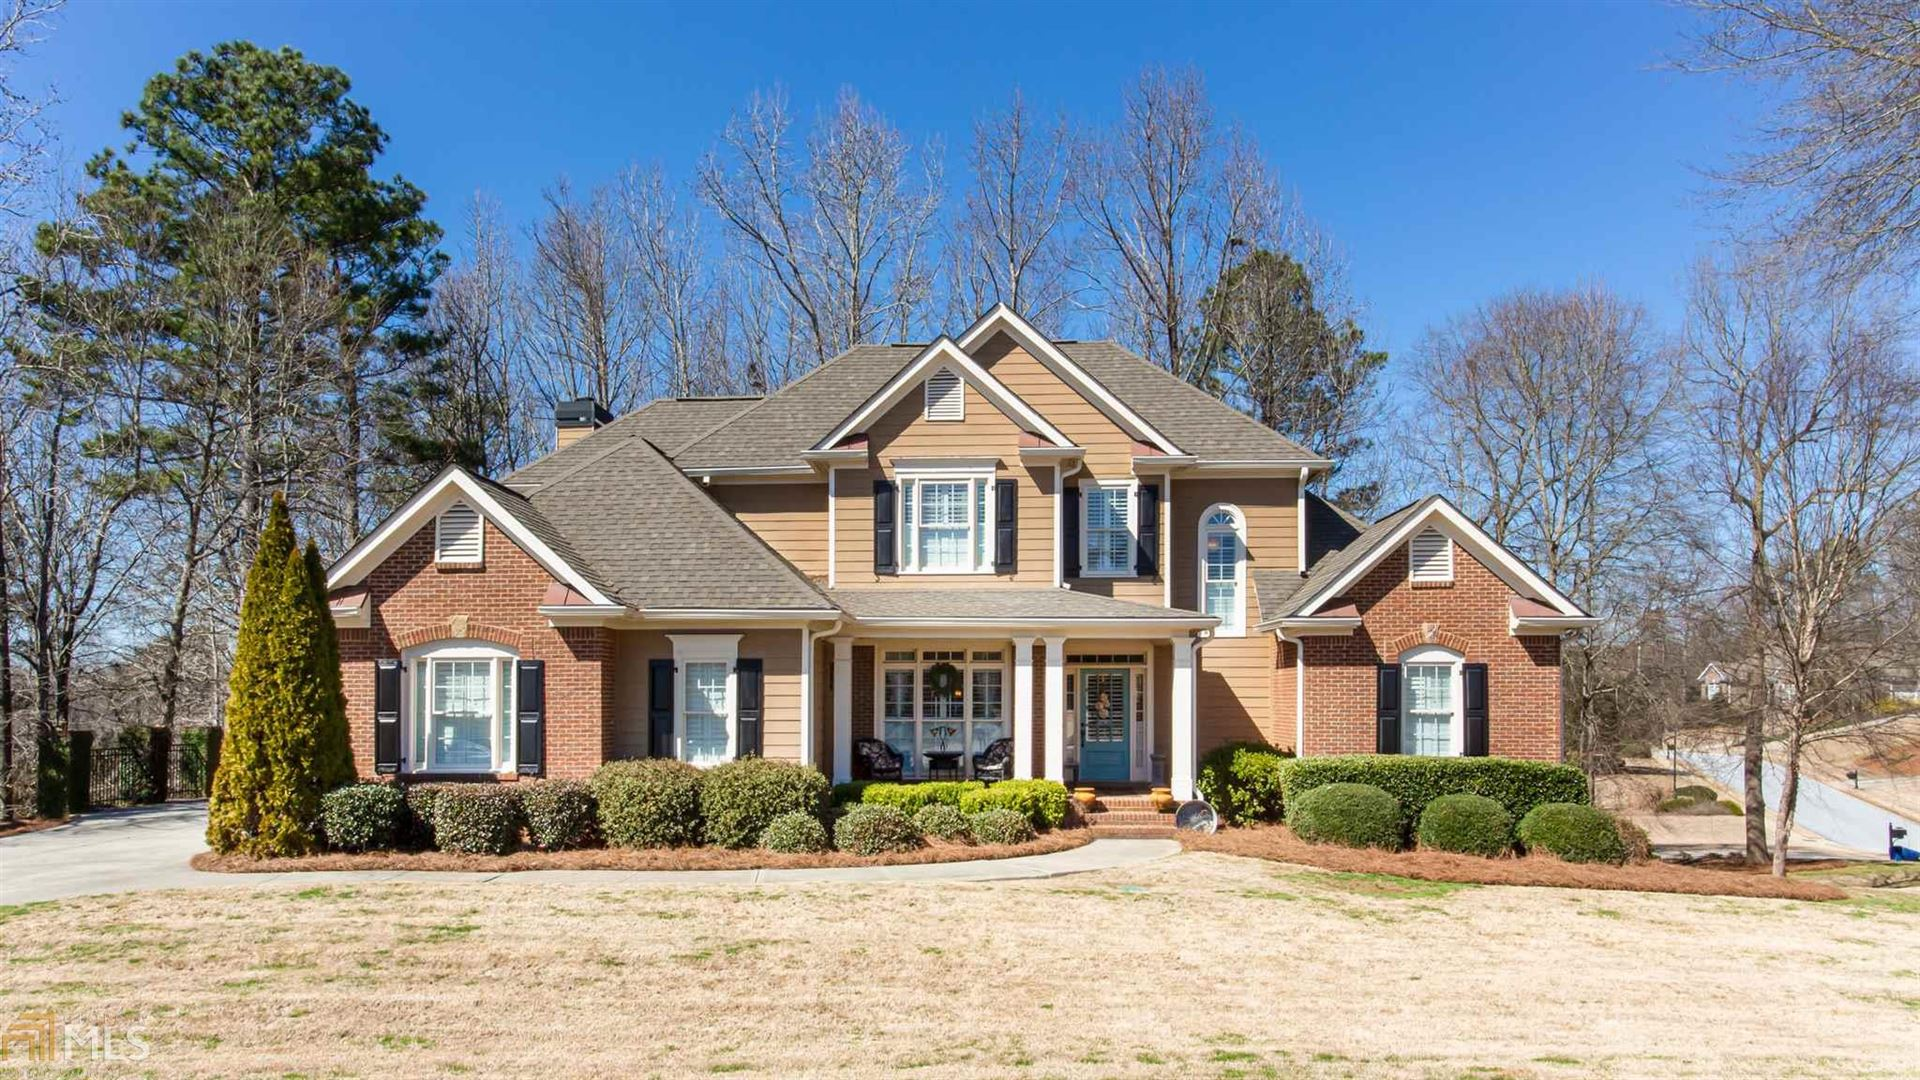 701 Sterling Water, Monroe, GA 30655 - MLS#: 8859429